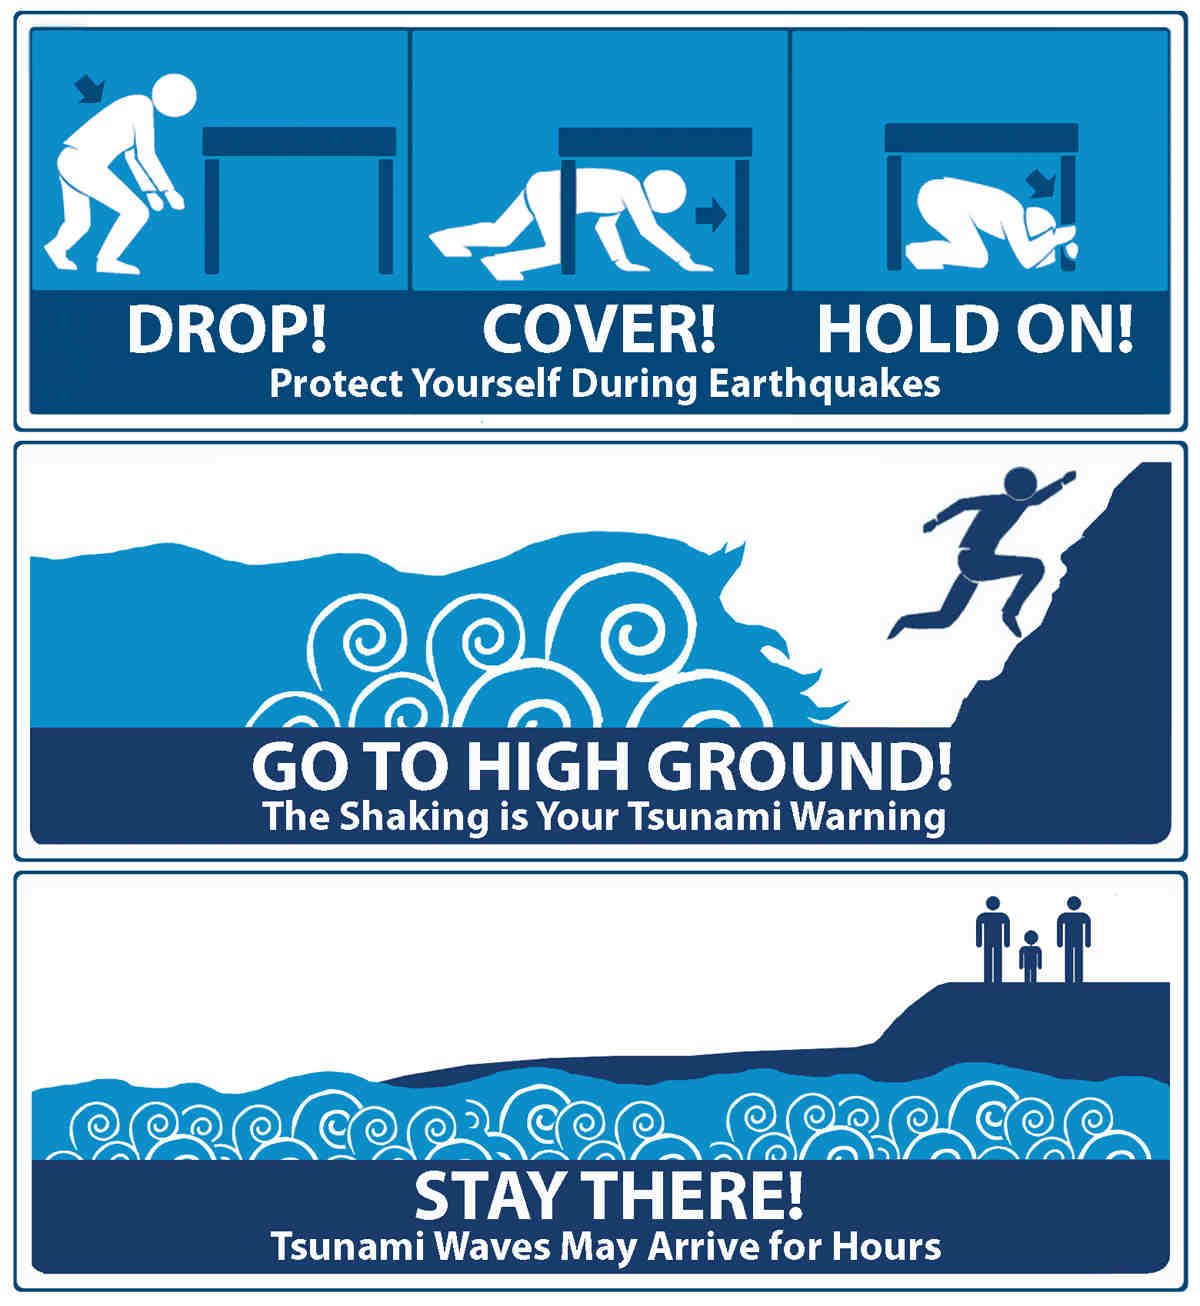 Earthquake safety tips for home before during and after for Where to go in an earthquake